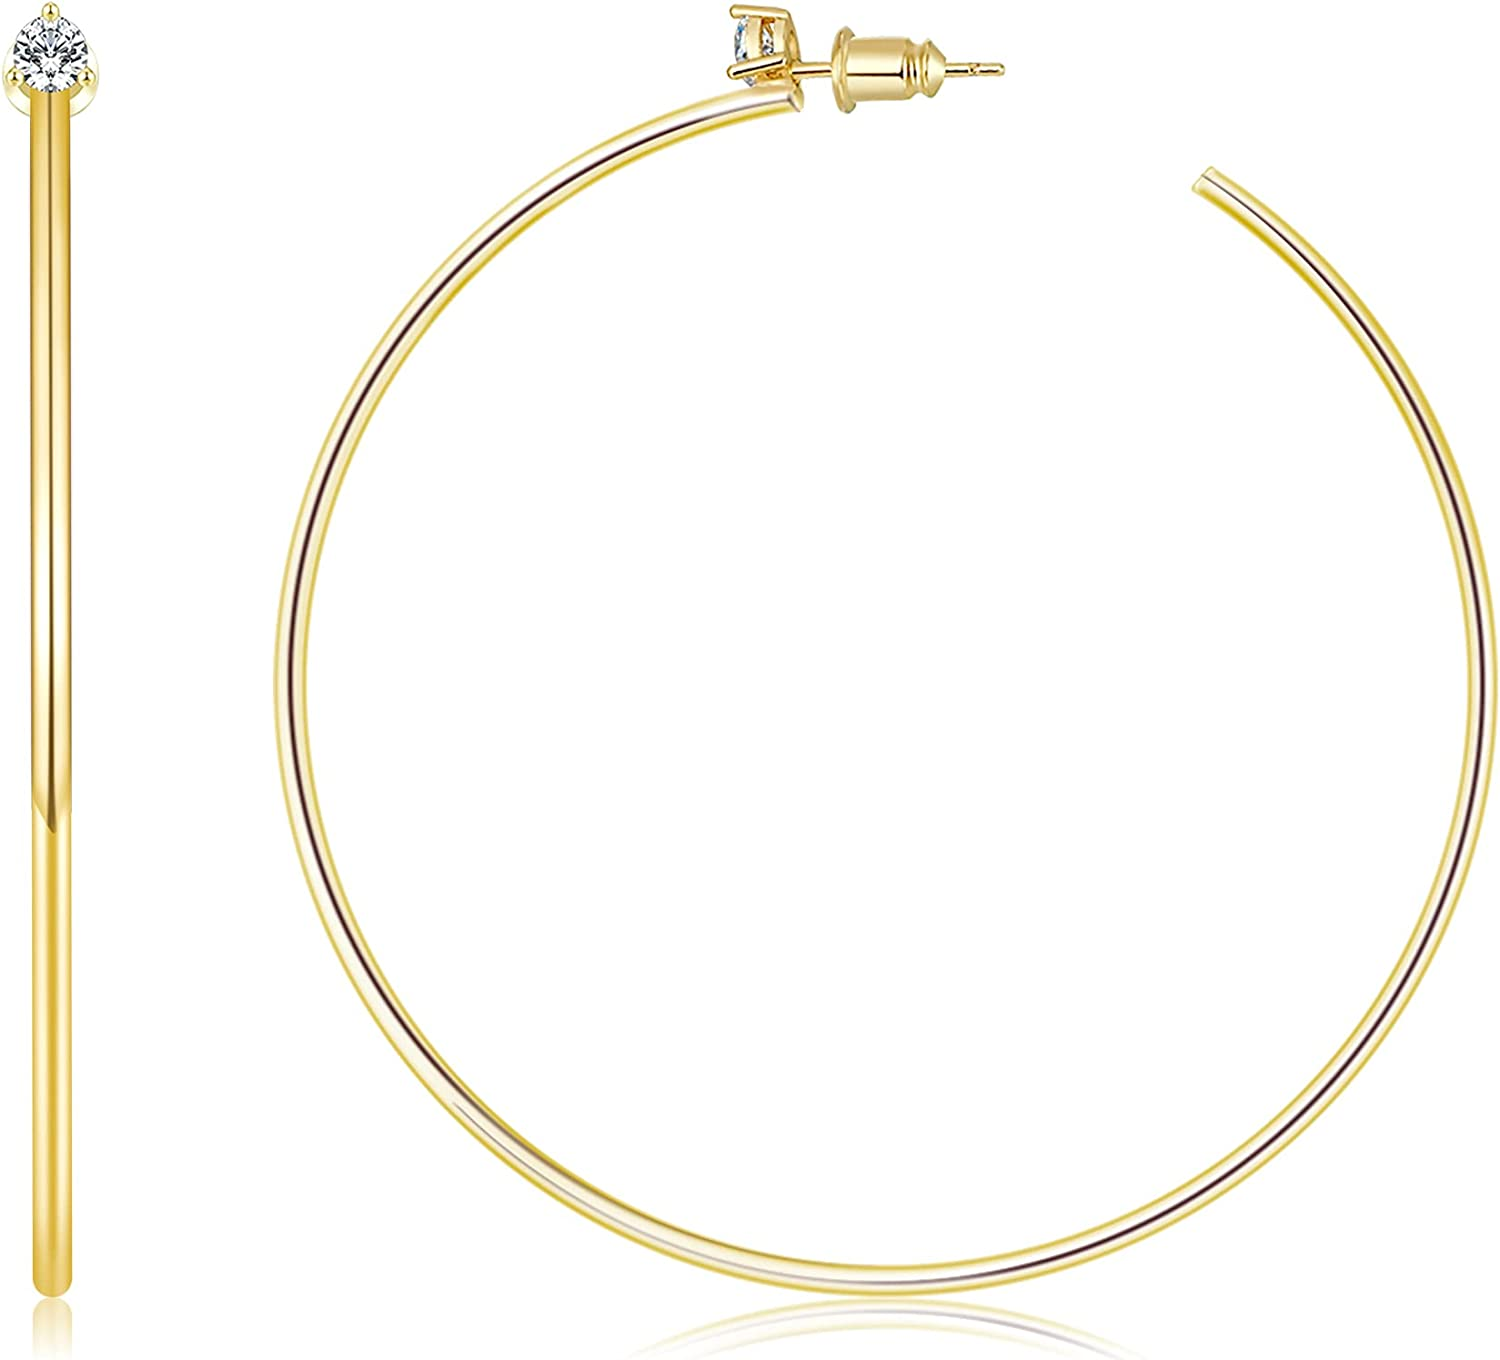 Besalon Gold Hoop Earrings for Women 14K Thin Gold Plated Hoops Earring Hoops for Girls Lightweight with Cubic Zirconia